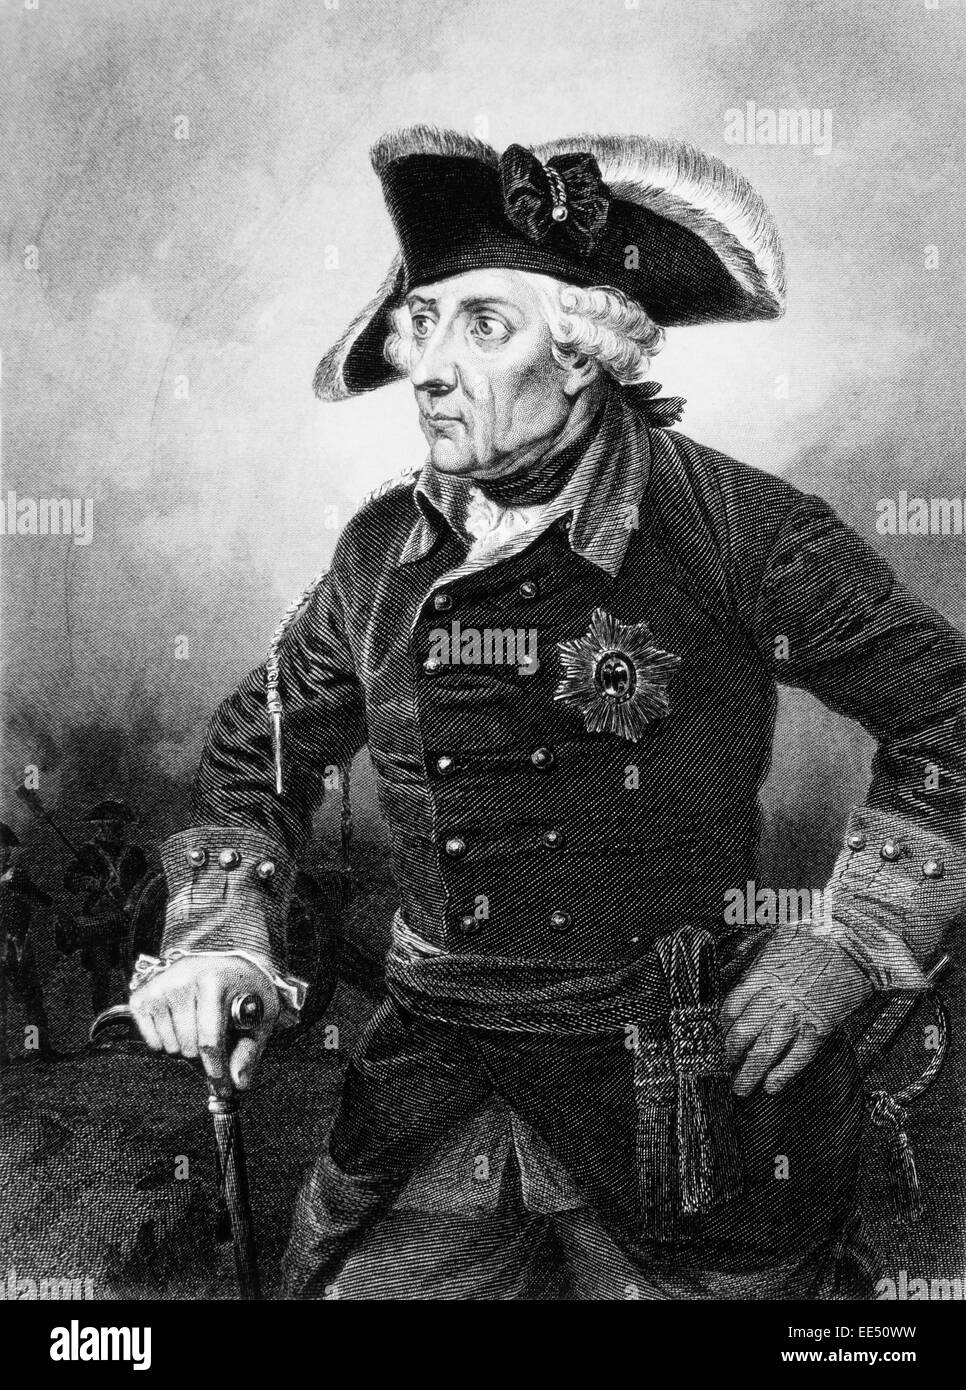 Frederick II, Frederick the Great (1712-86), King of Prussia (1740-86), Portrait - Stock Image